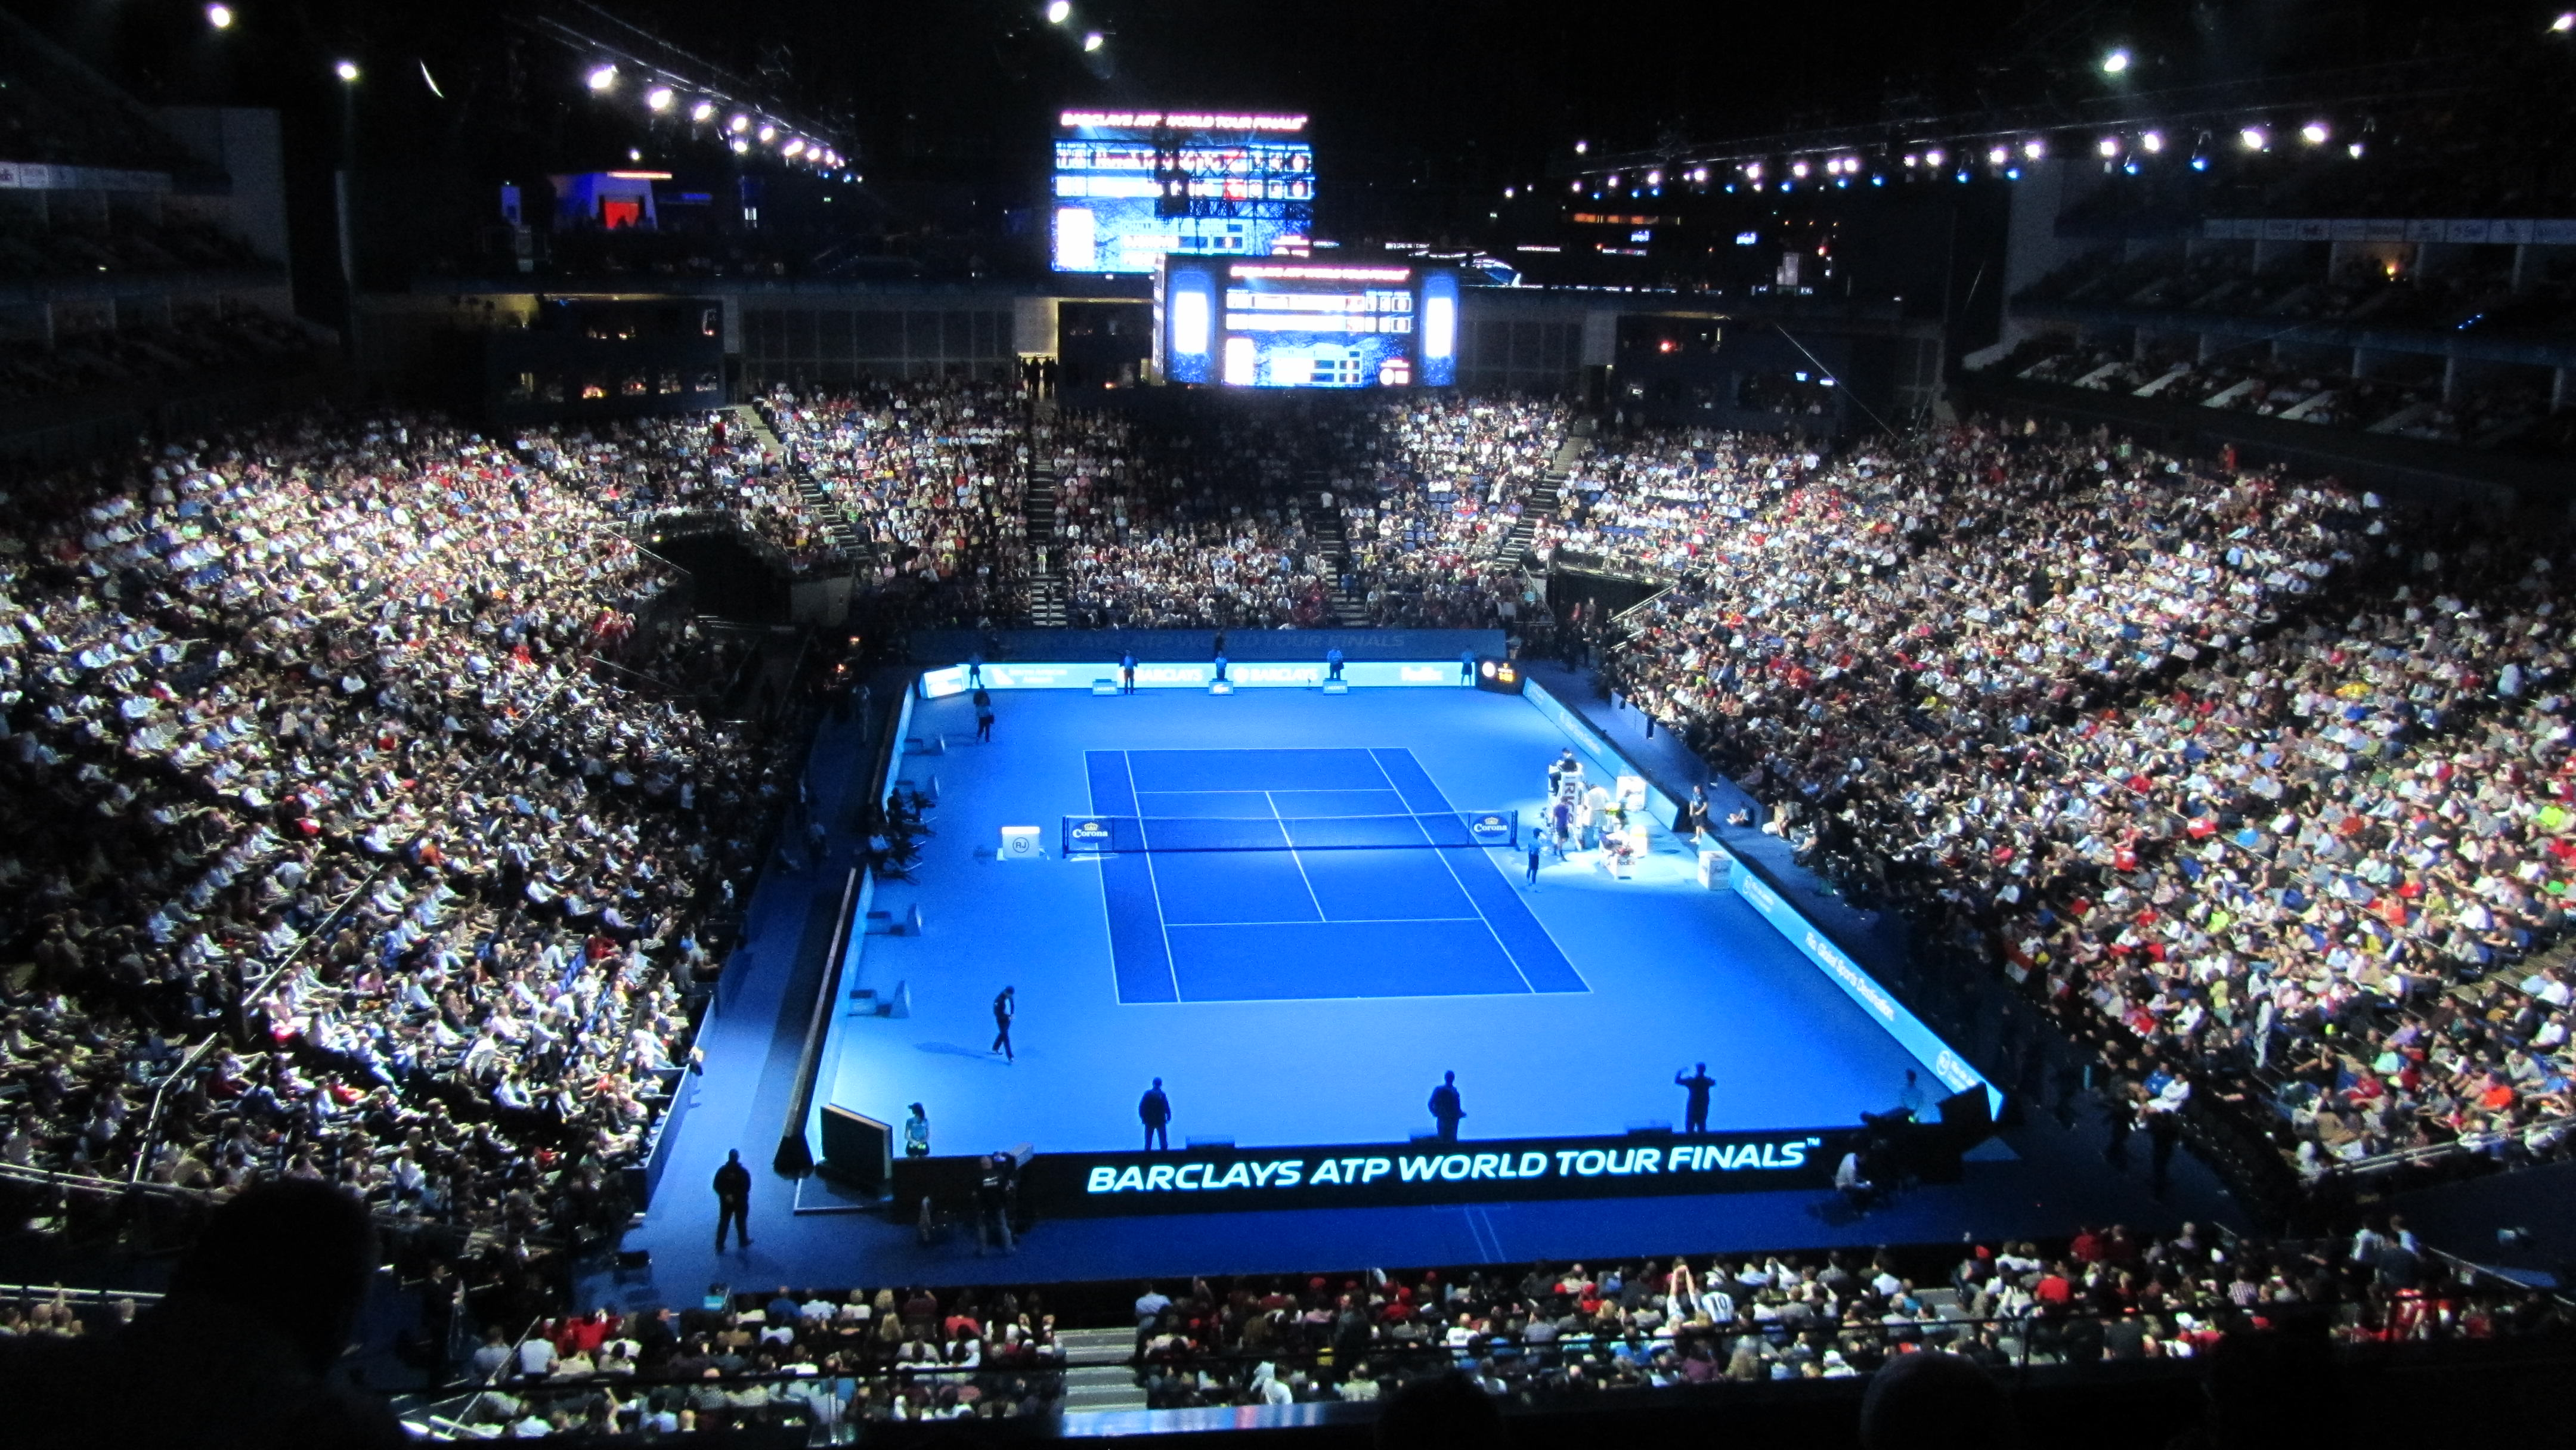 World Tennis Accused Of Match Fixing And Corruption At Highest level origin 8lyl1tvl atp tennis finals at the o2